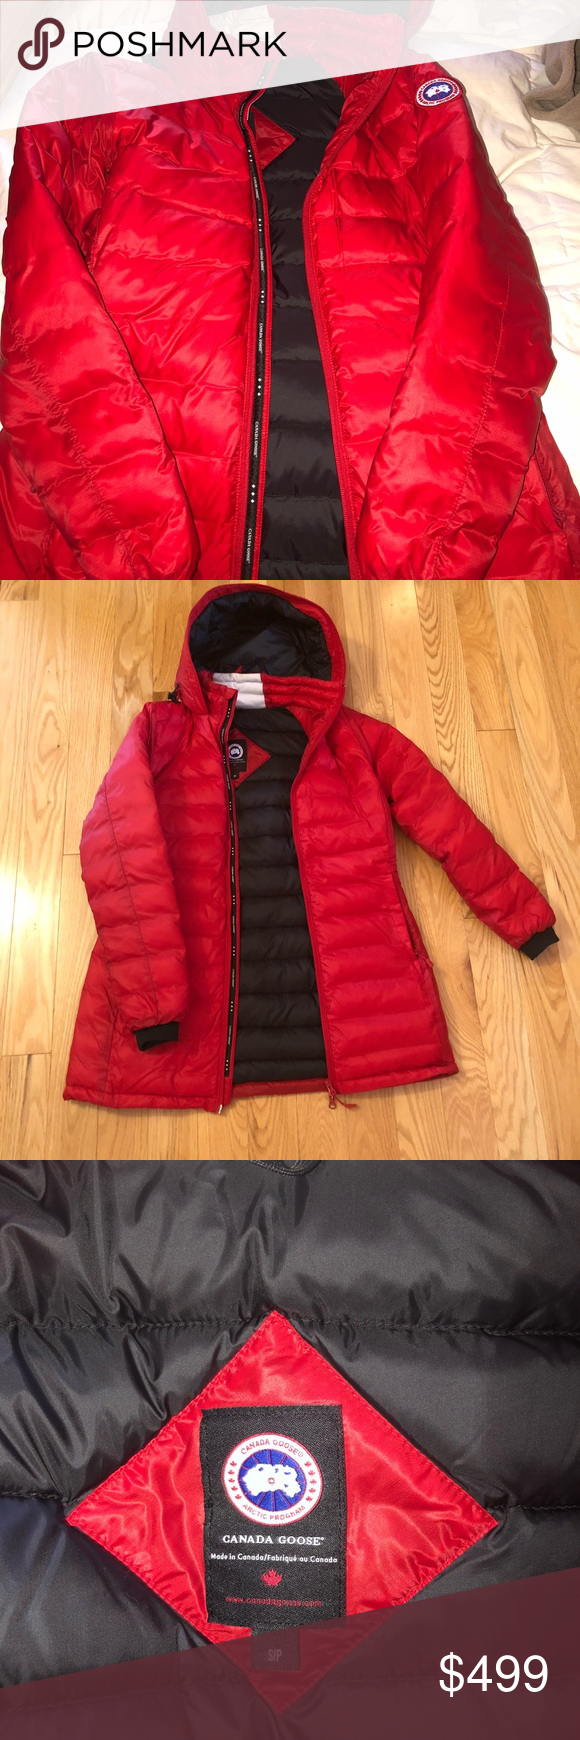 382384f96 Canada Goose 'Camp' hooded down jacket Purchased online from Canada Goose  website. SIZE SMALL. I got it last winter but it is the wrong size for me.